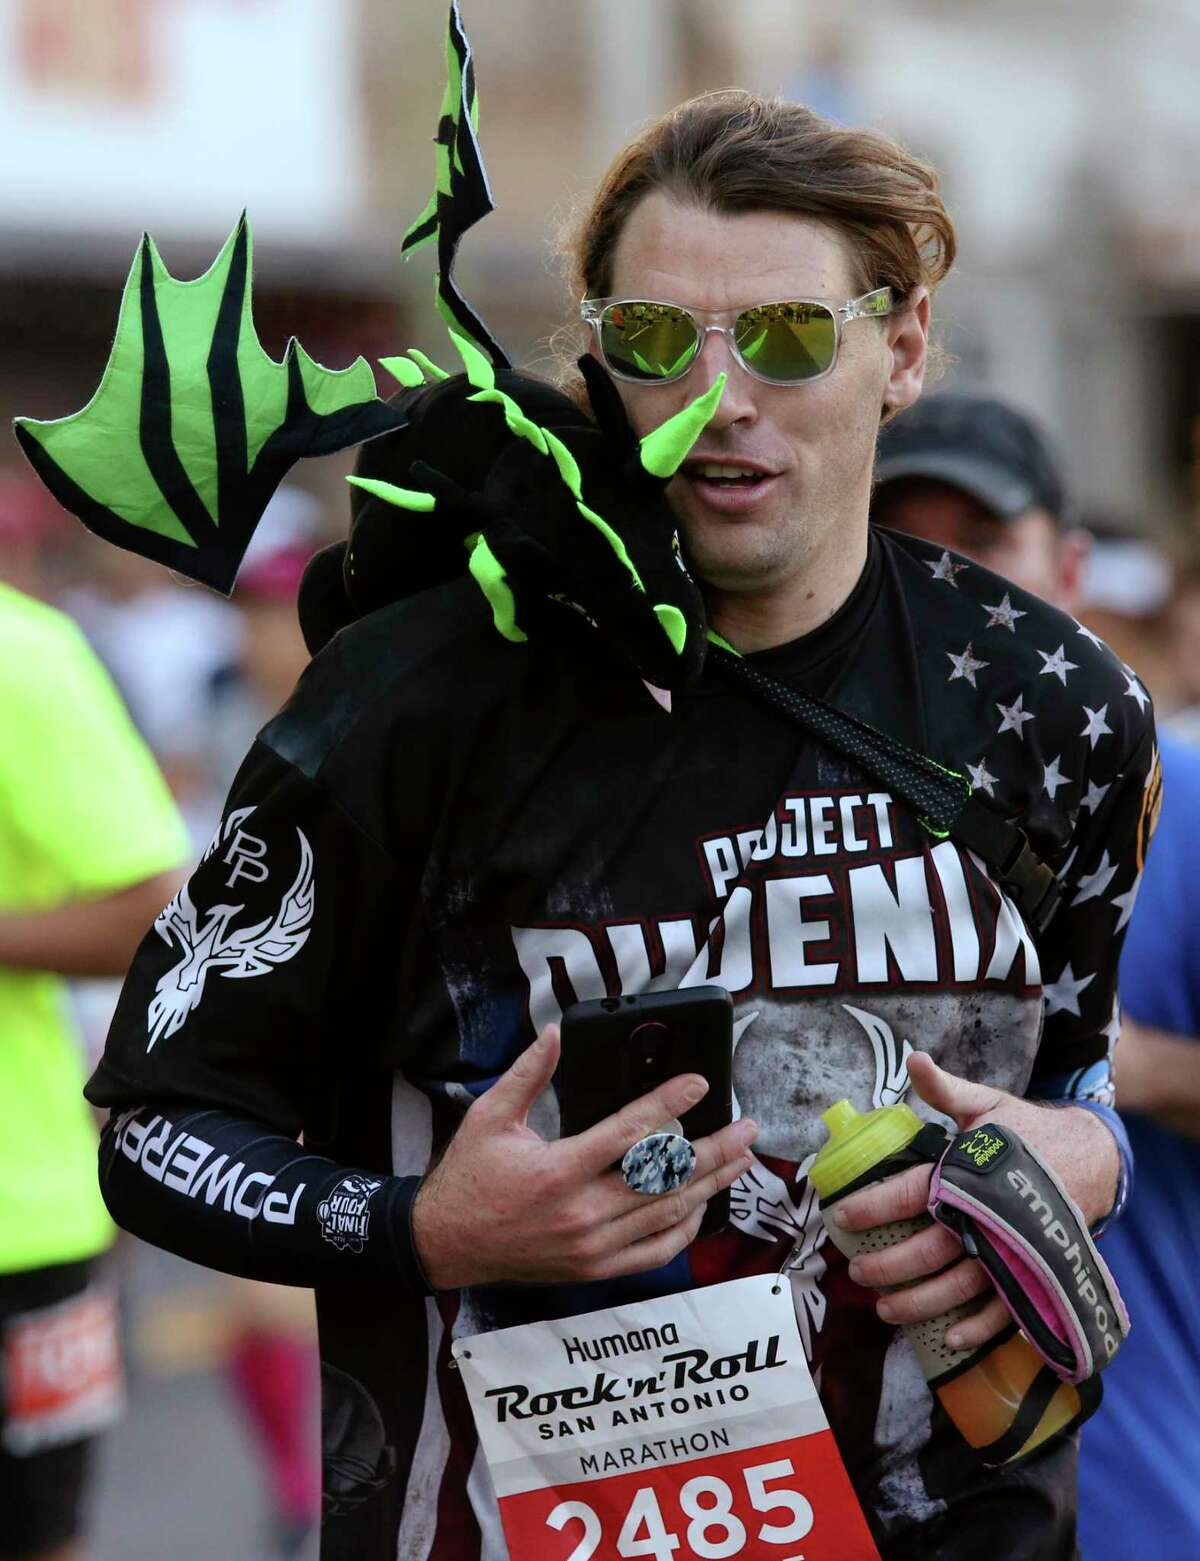 Louis Johnson runs with a stuffed dragon during the 2018 Humana Rock 'n' Roll San Antonio Marathon and 1/2 Marathon, Sunday, Dec. 2, 2018.